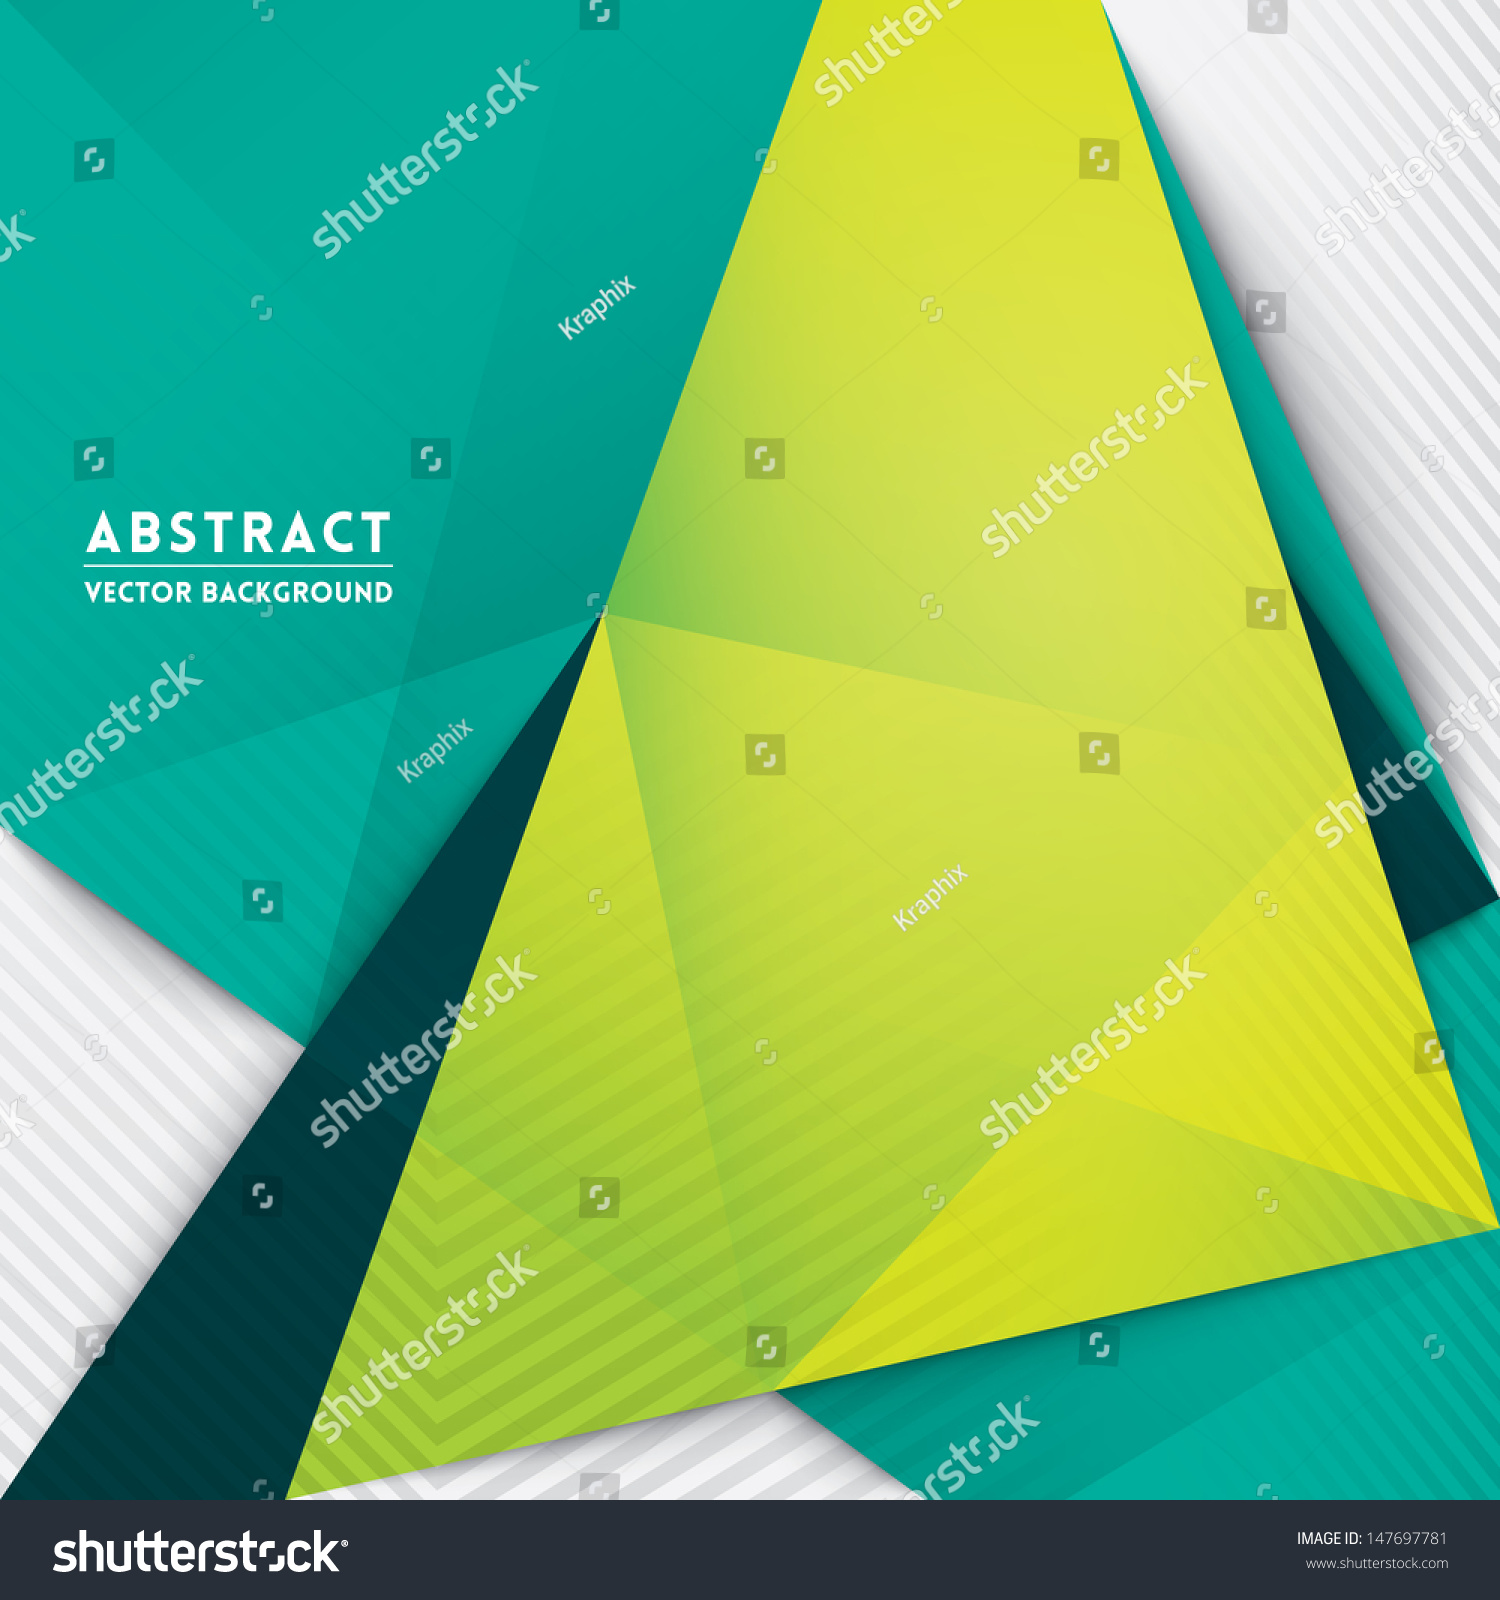 Creative Backgrounds Book Cover Pictures ~ Abstract triangle shape background web design stock vector